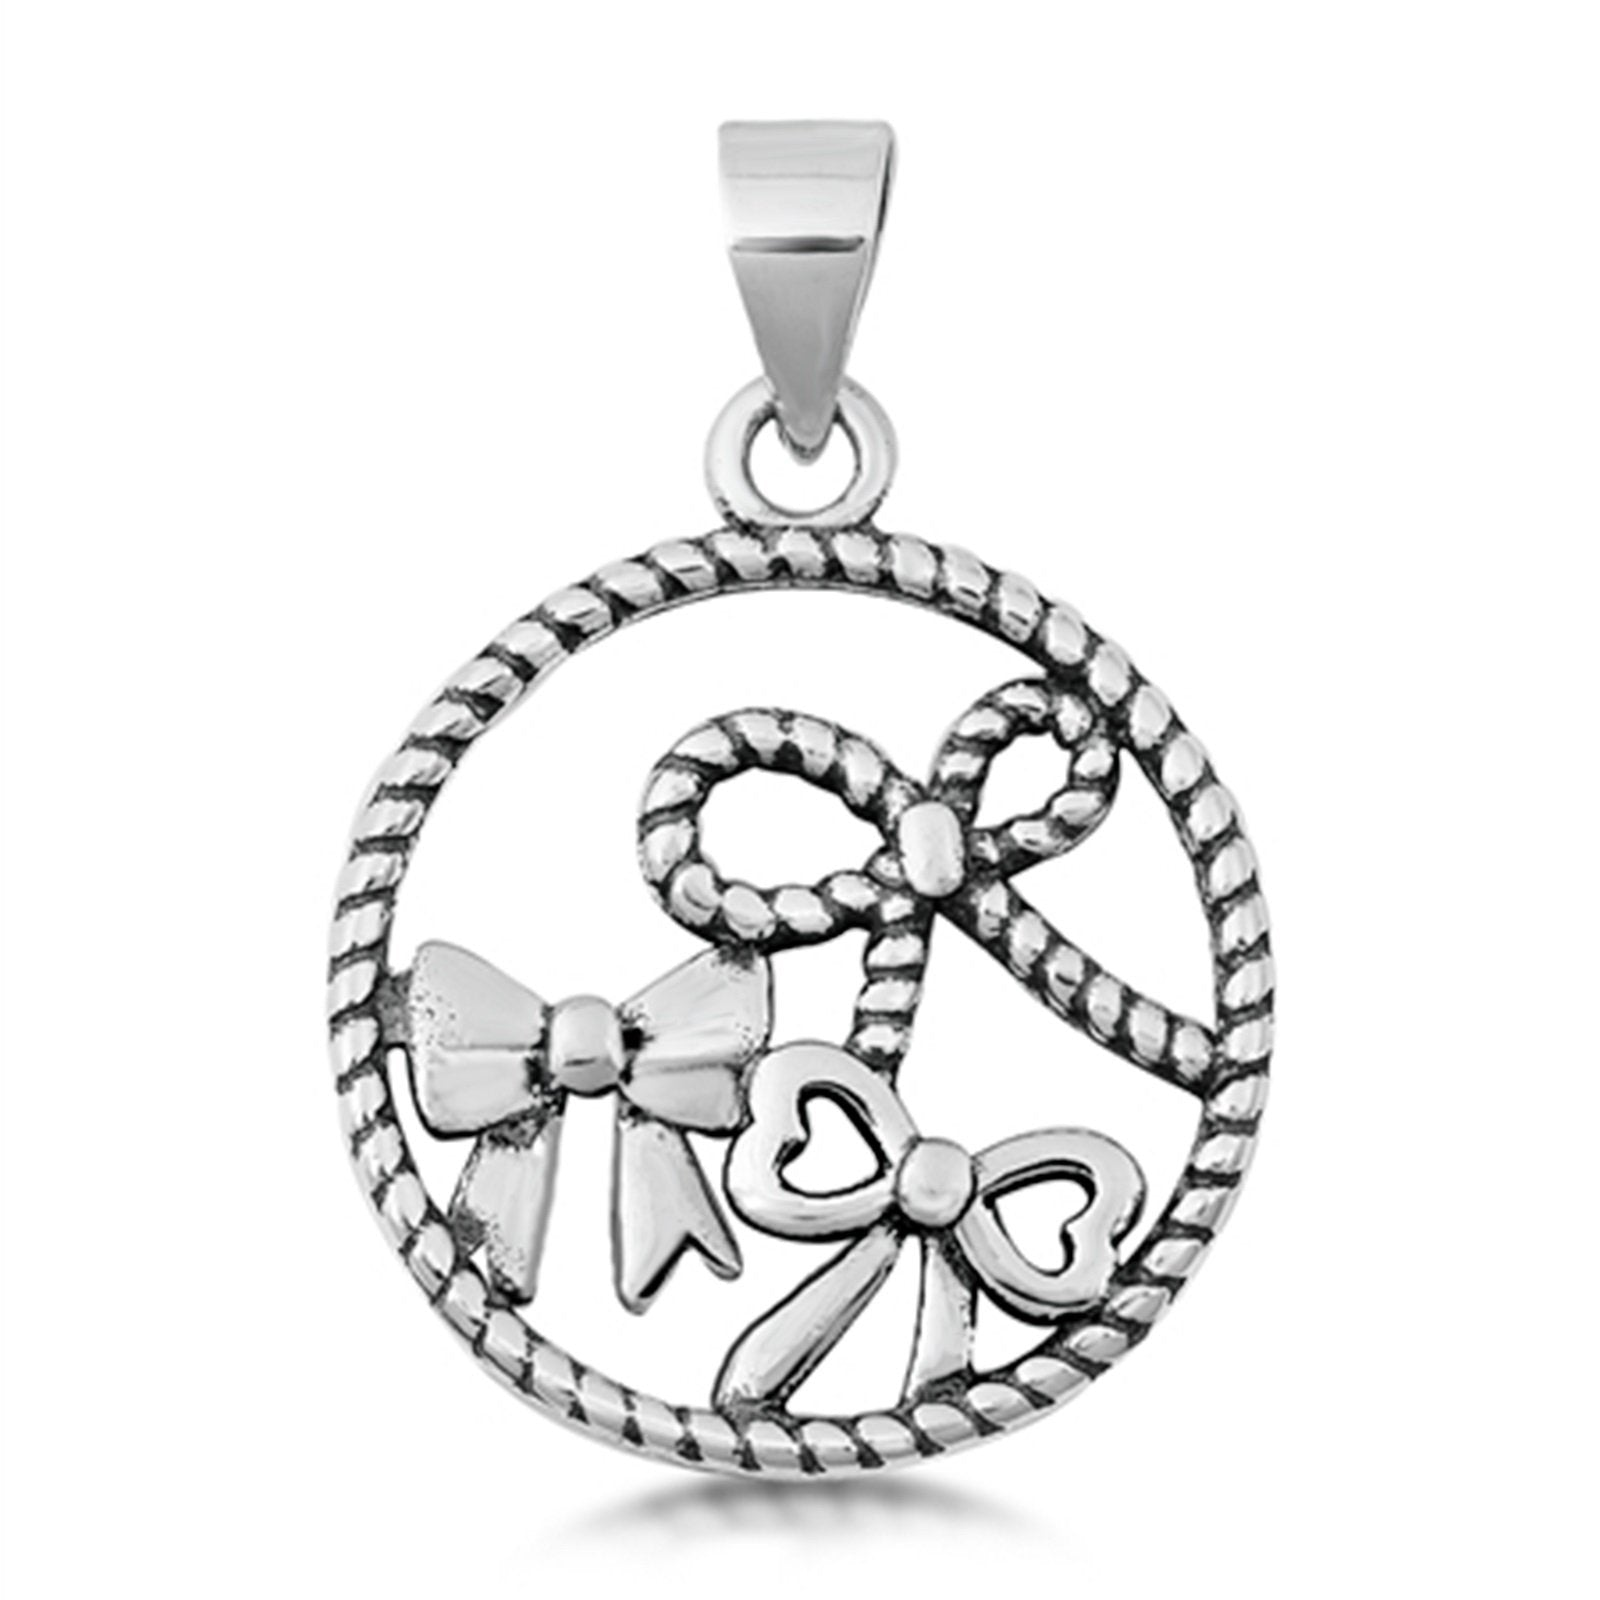 Bows Pendant Charm 925 Sterling Silver Fashion Jewelry